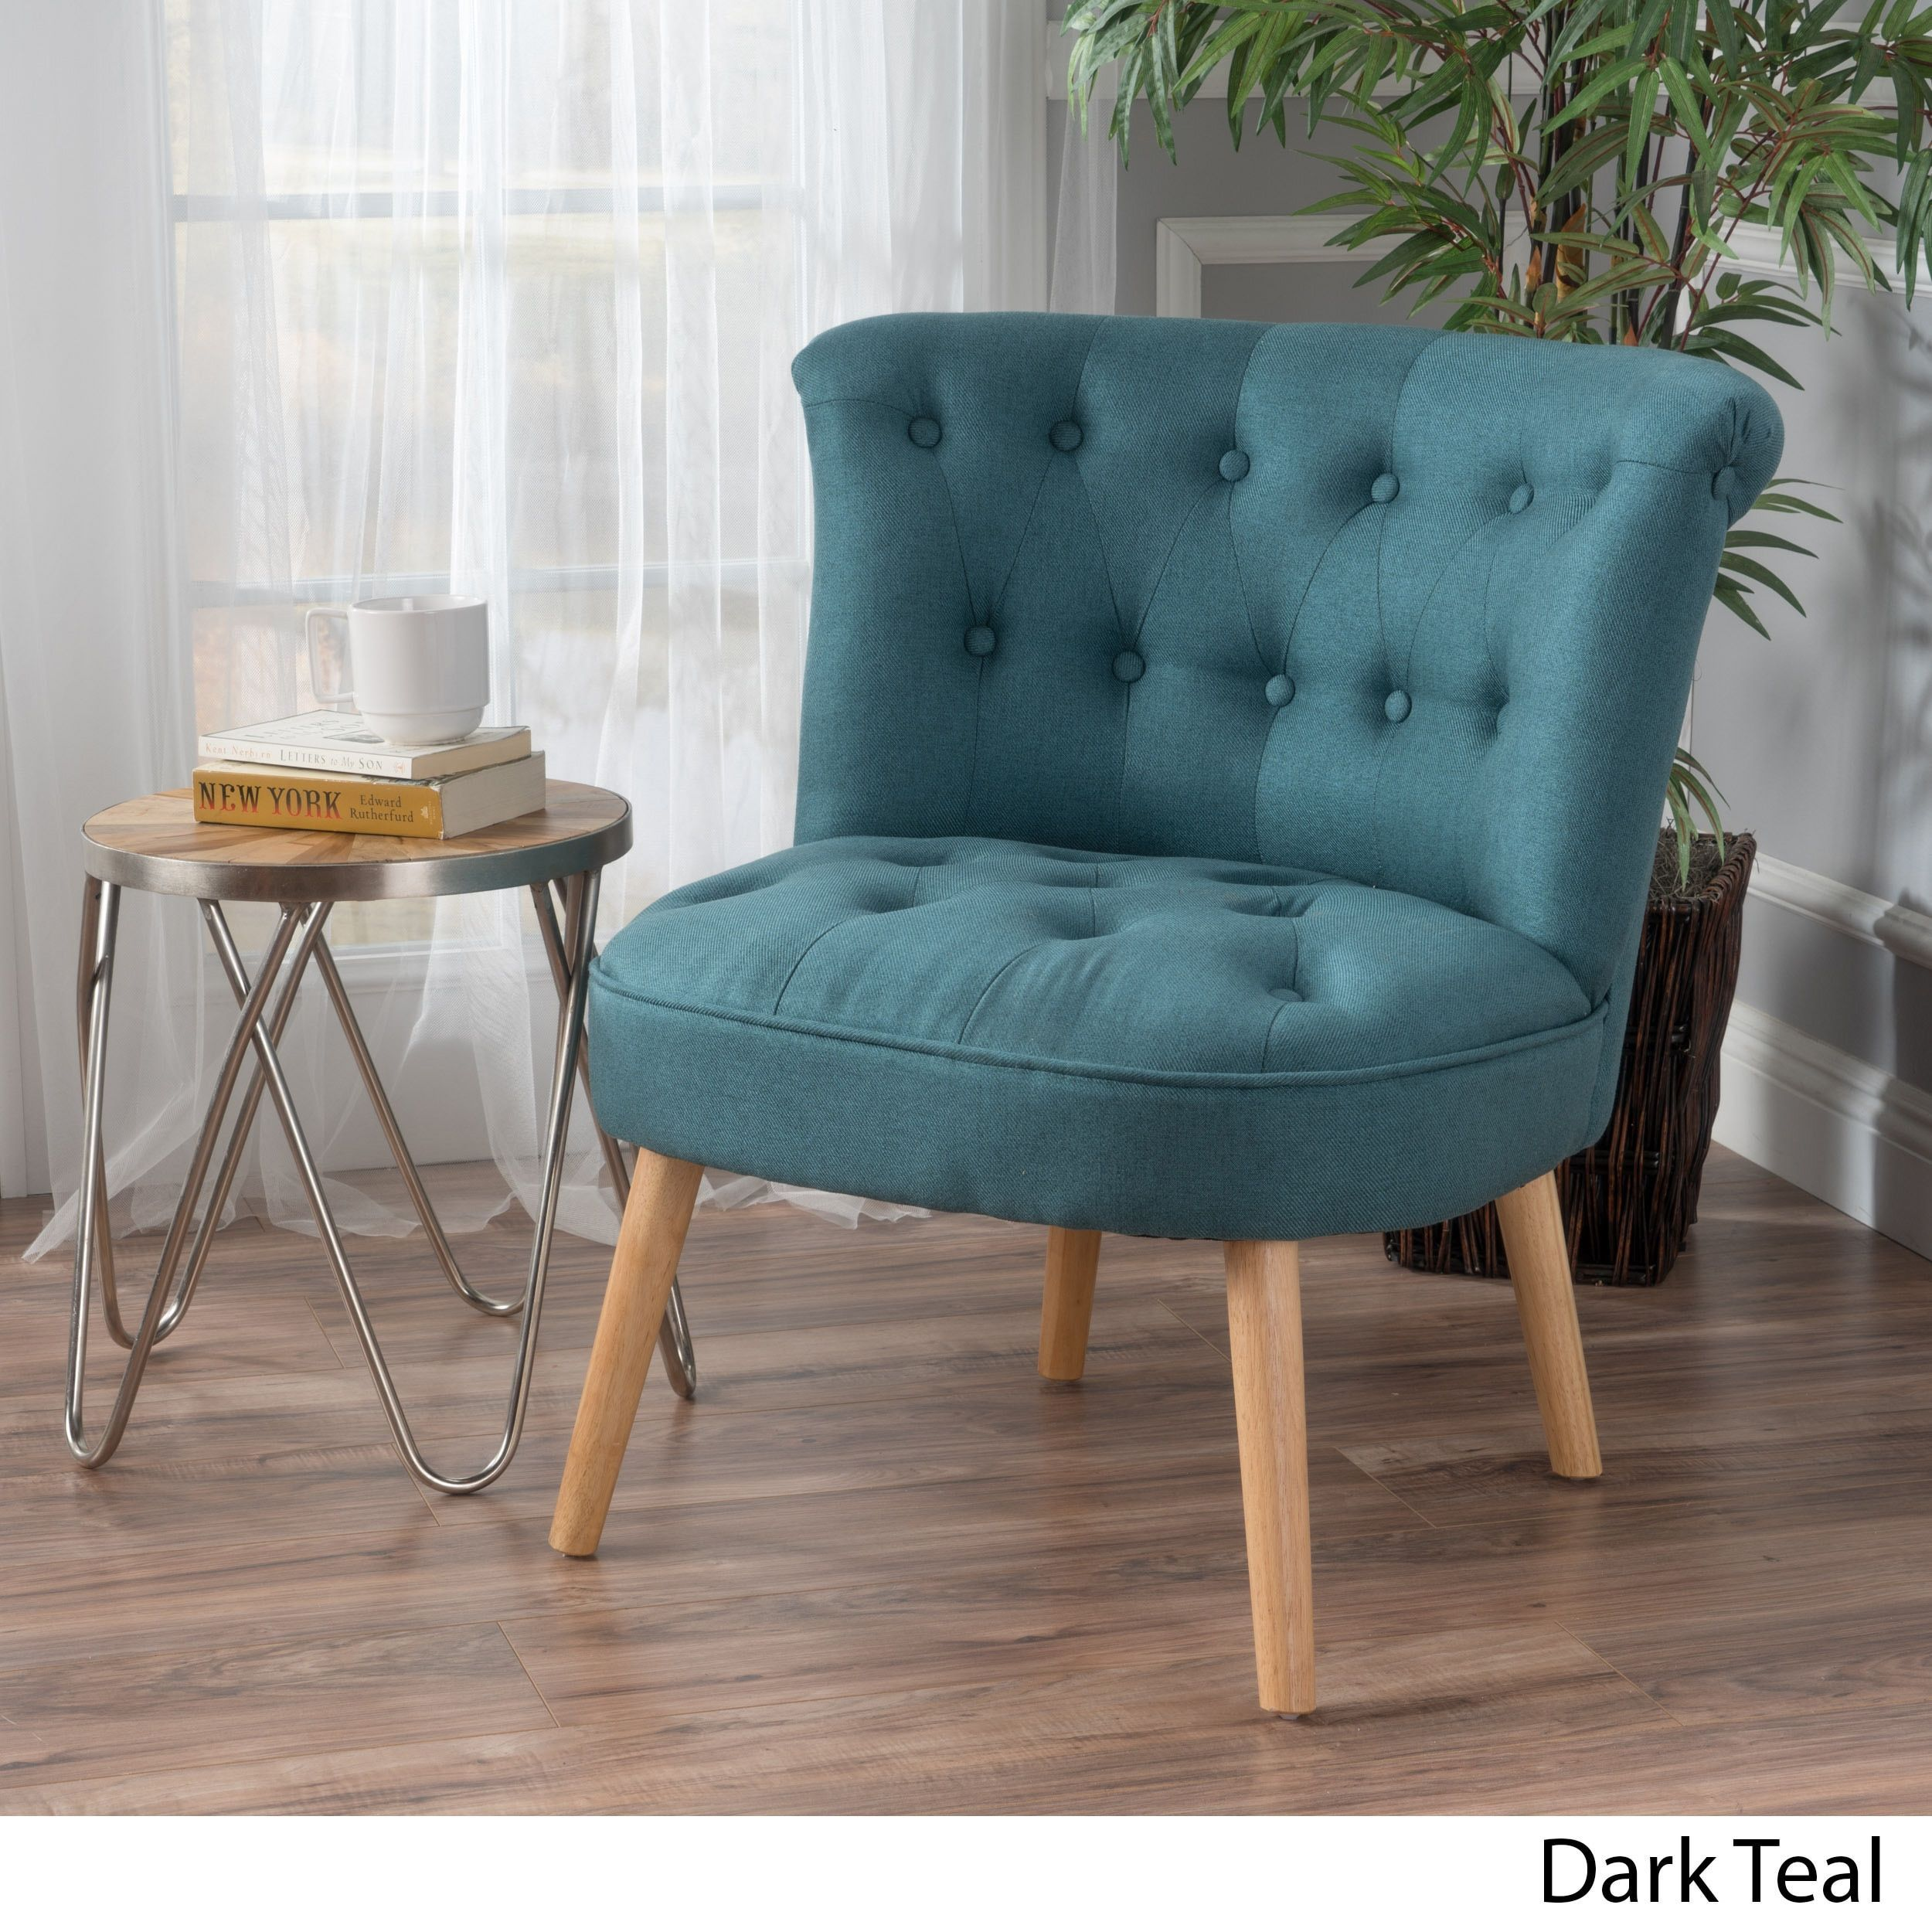 Dark Teal Accent Chair Dining Room Chairs On Wheels Cicely Tufted Fabric By Christopher Knight